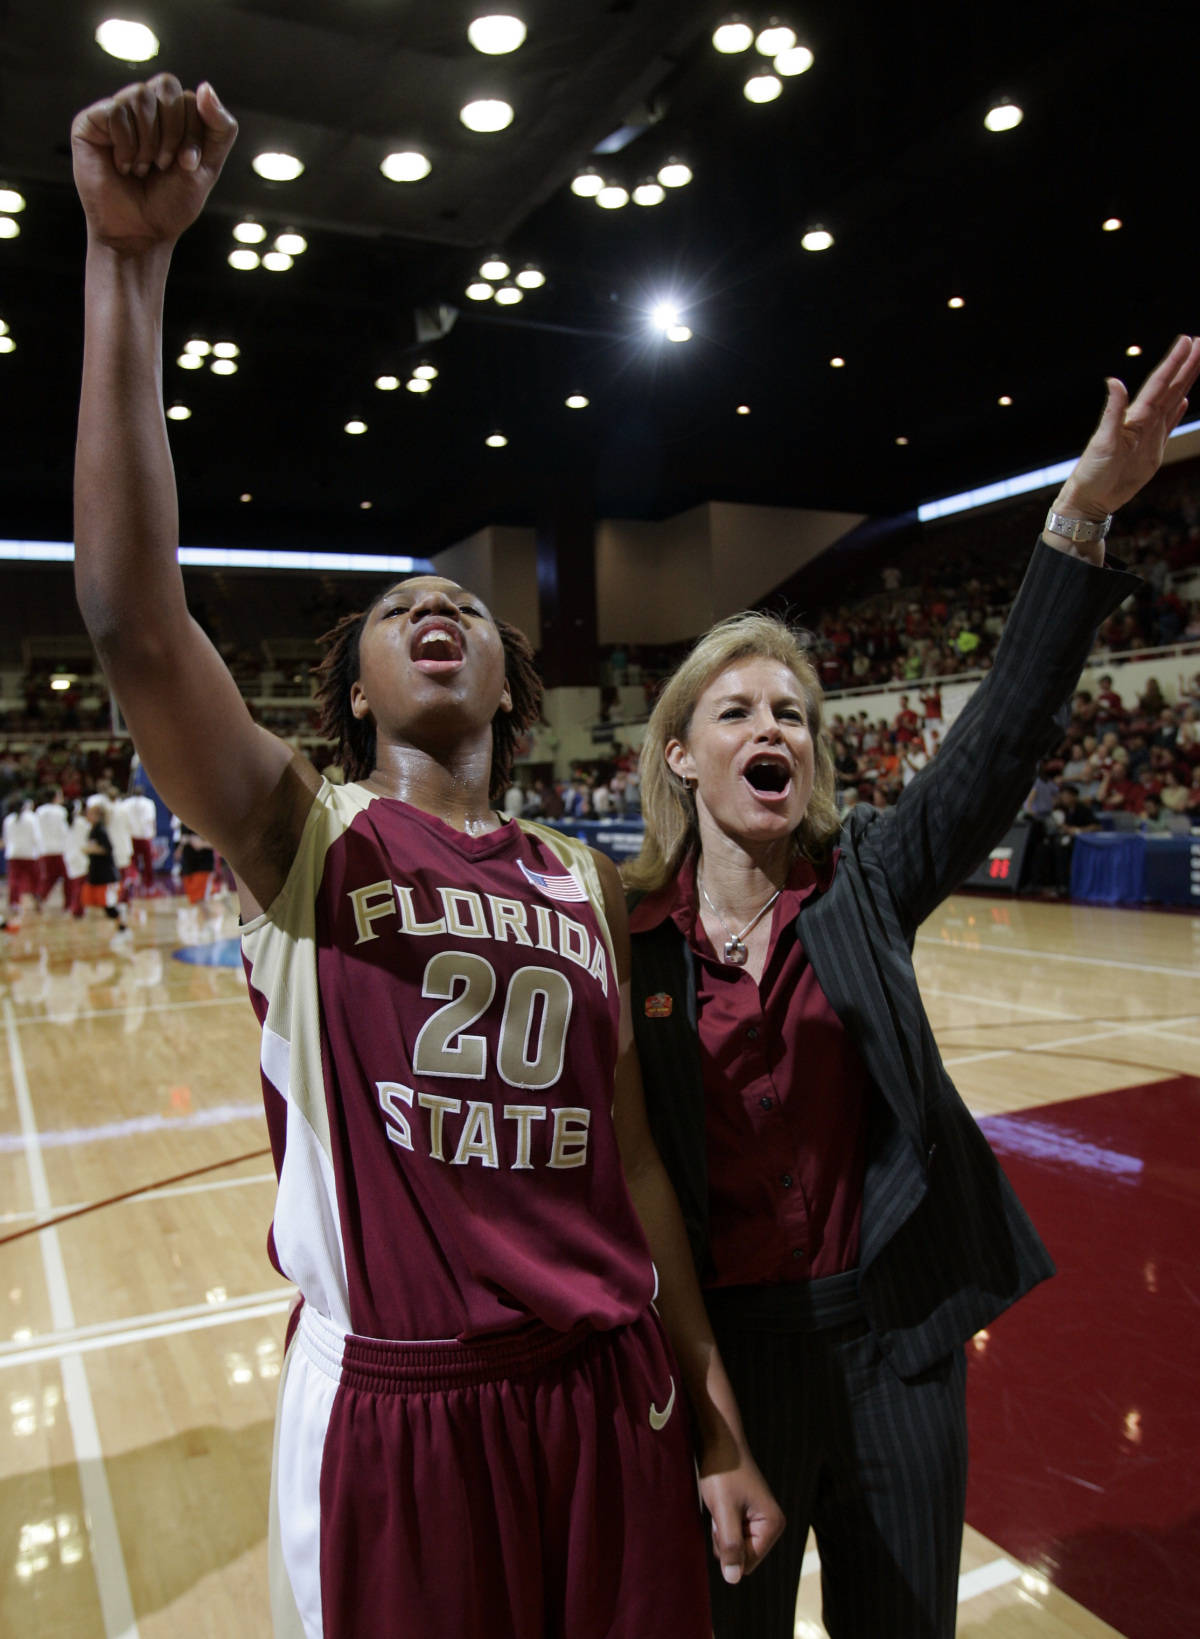 Florida State head coach Sue Semrau, right, and guard Tanae Davis-Cain (2) celebrate after defeating Old Dominion 85-75 in a first round NCAA West Regional women's basketball game Saturday, March 17, 2007, in Stanford, Calif. Davis-Cain was the game high scorer with 24 points. (AP Photo/Paul Sakuma)